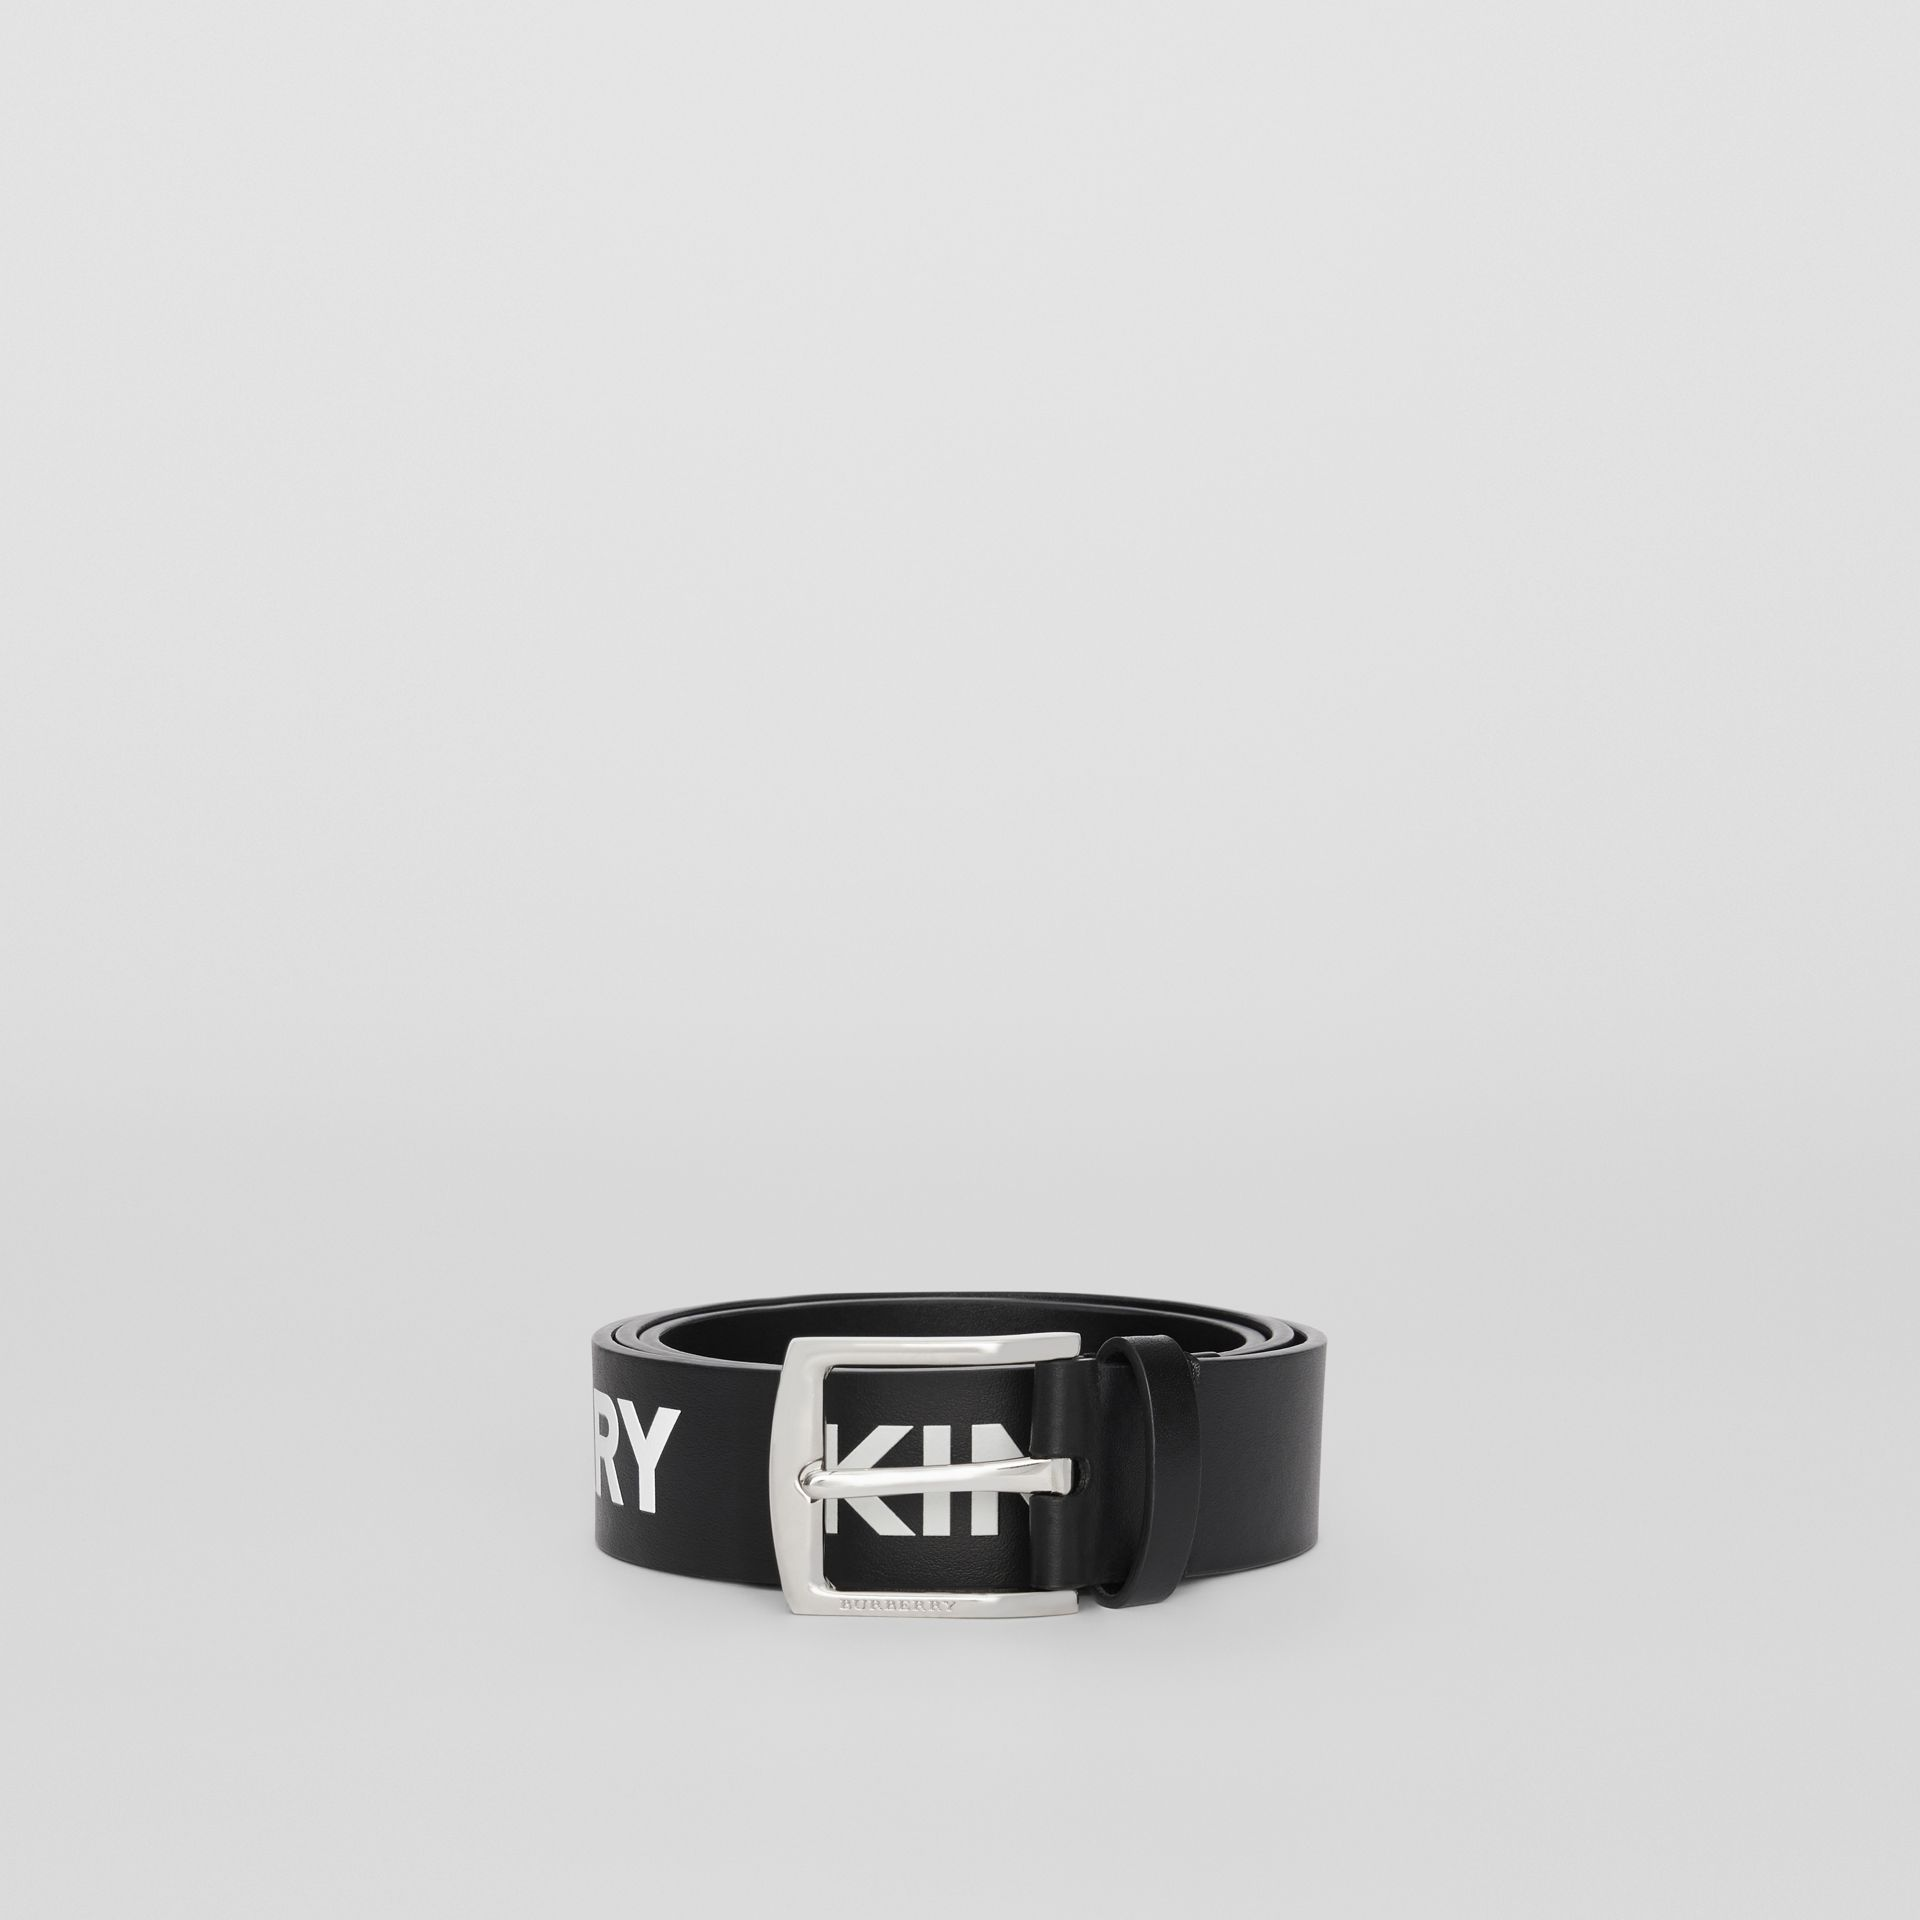 Kingdom Print Leather Belt in Black - Men | Burberry United Kingdom - gallery image 2